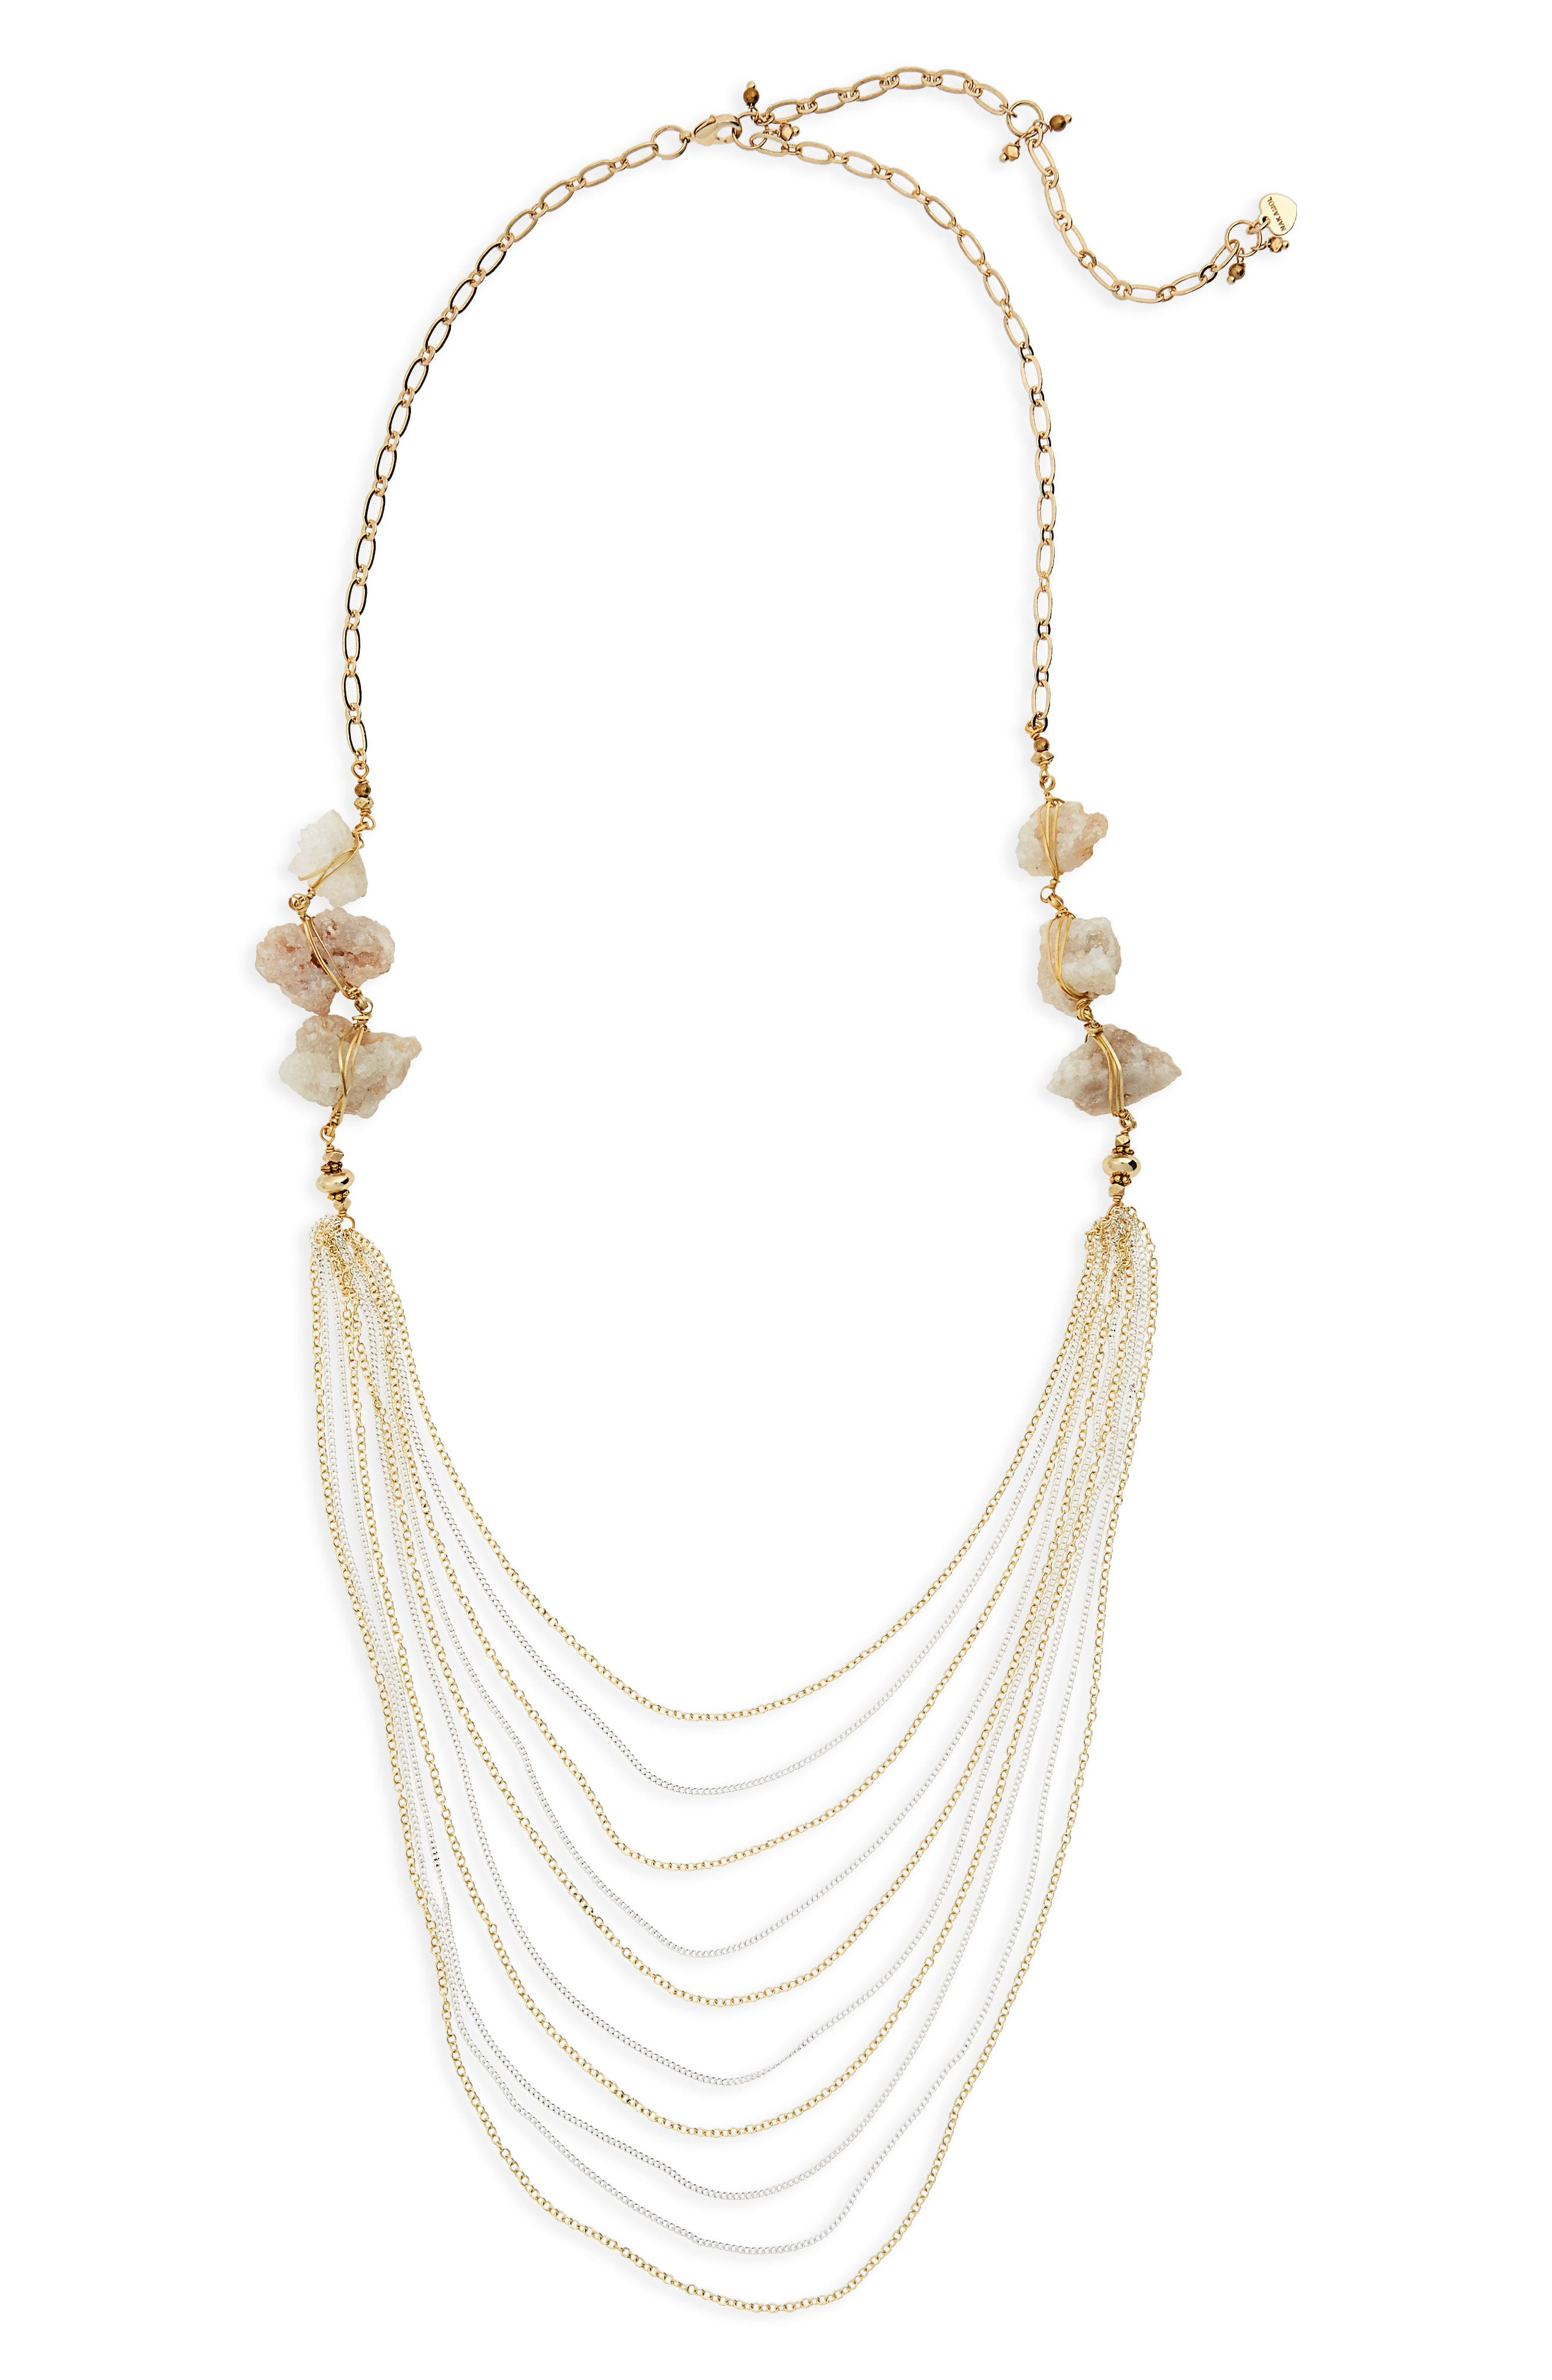 Agate Layered Chain Necklace,                             Main thumbnail 1, color,